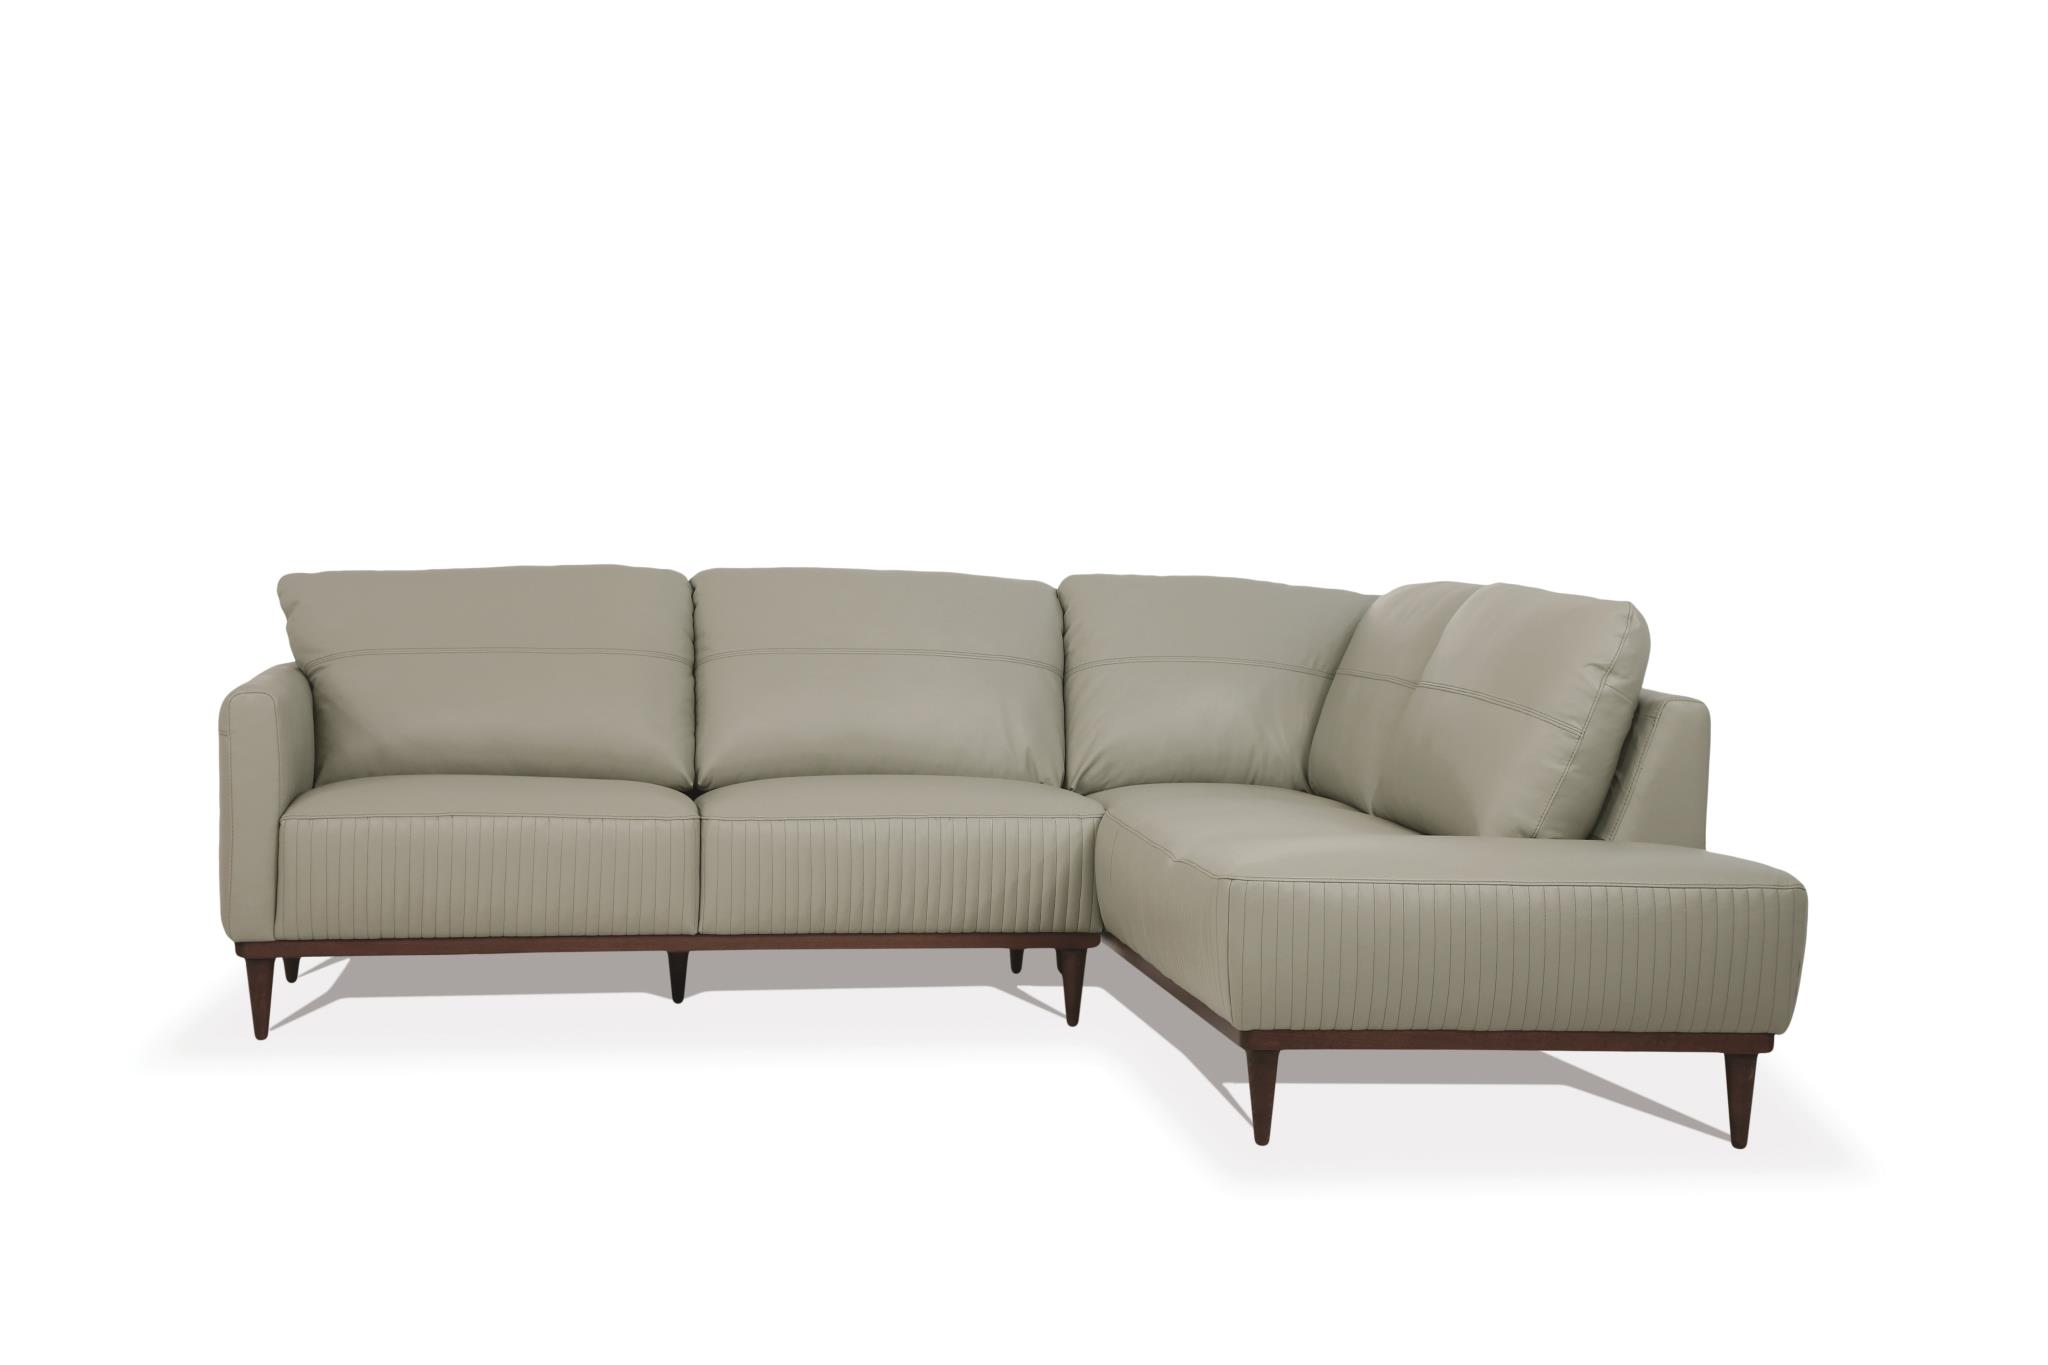 Airy Green Sectional Sofa w/ Right Facing Chaise Front